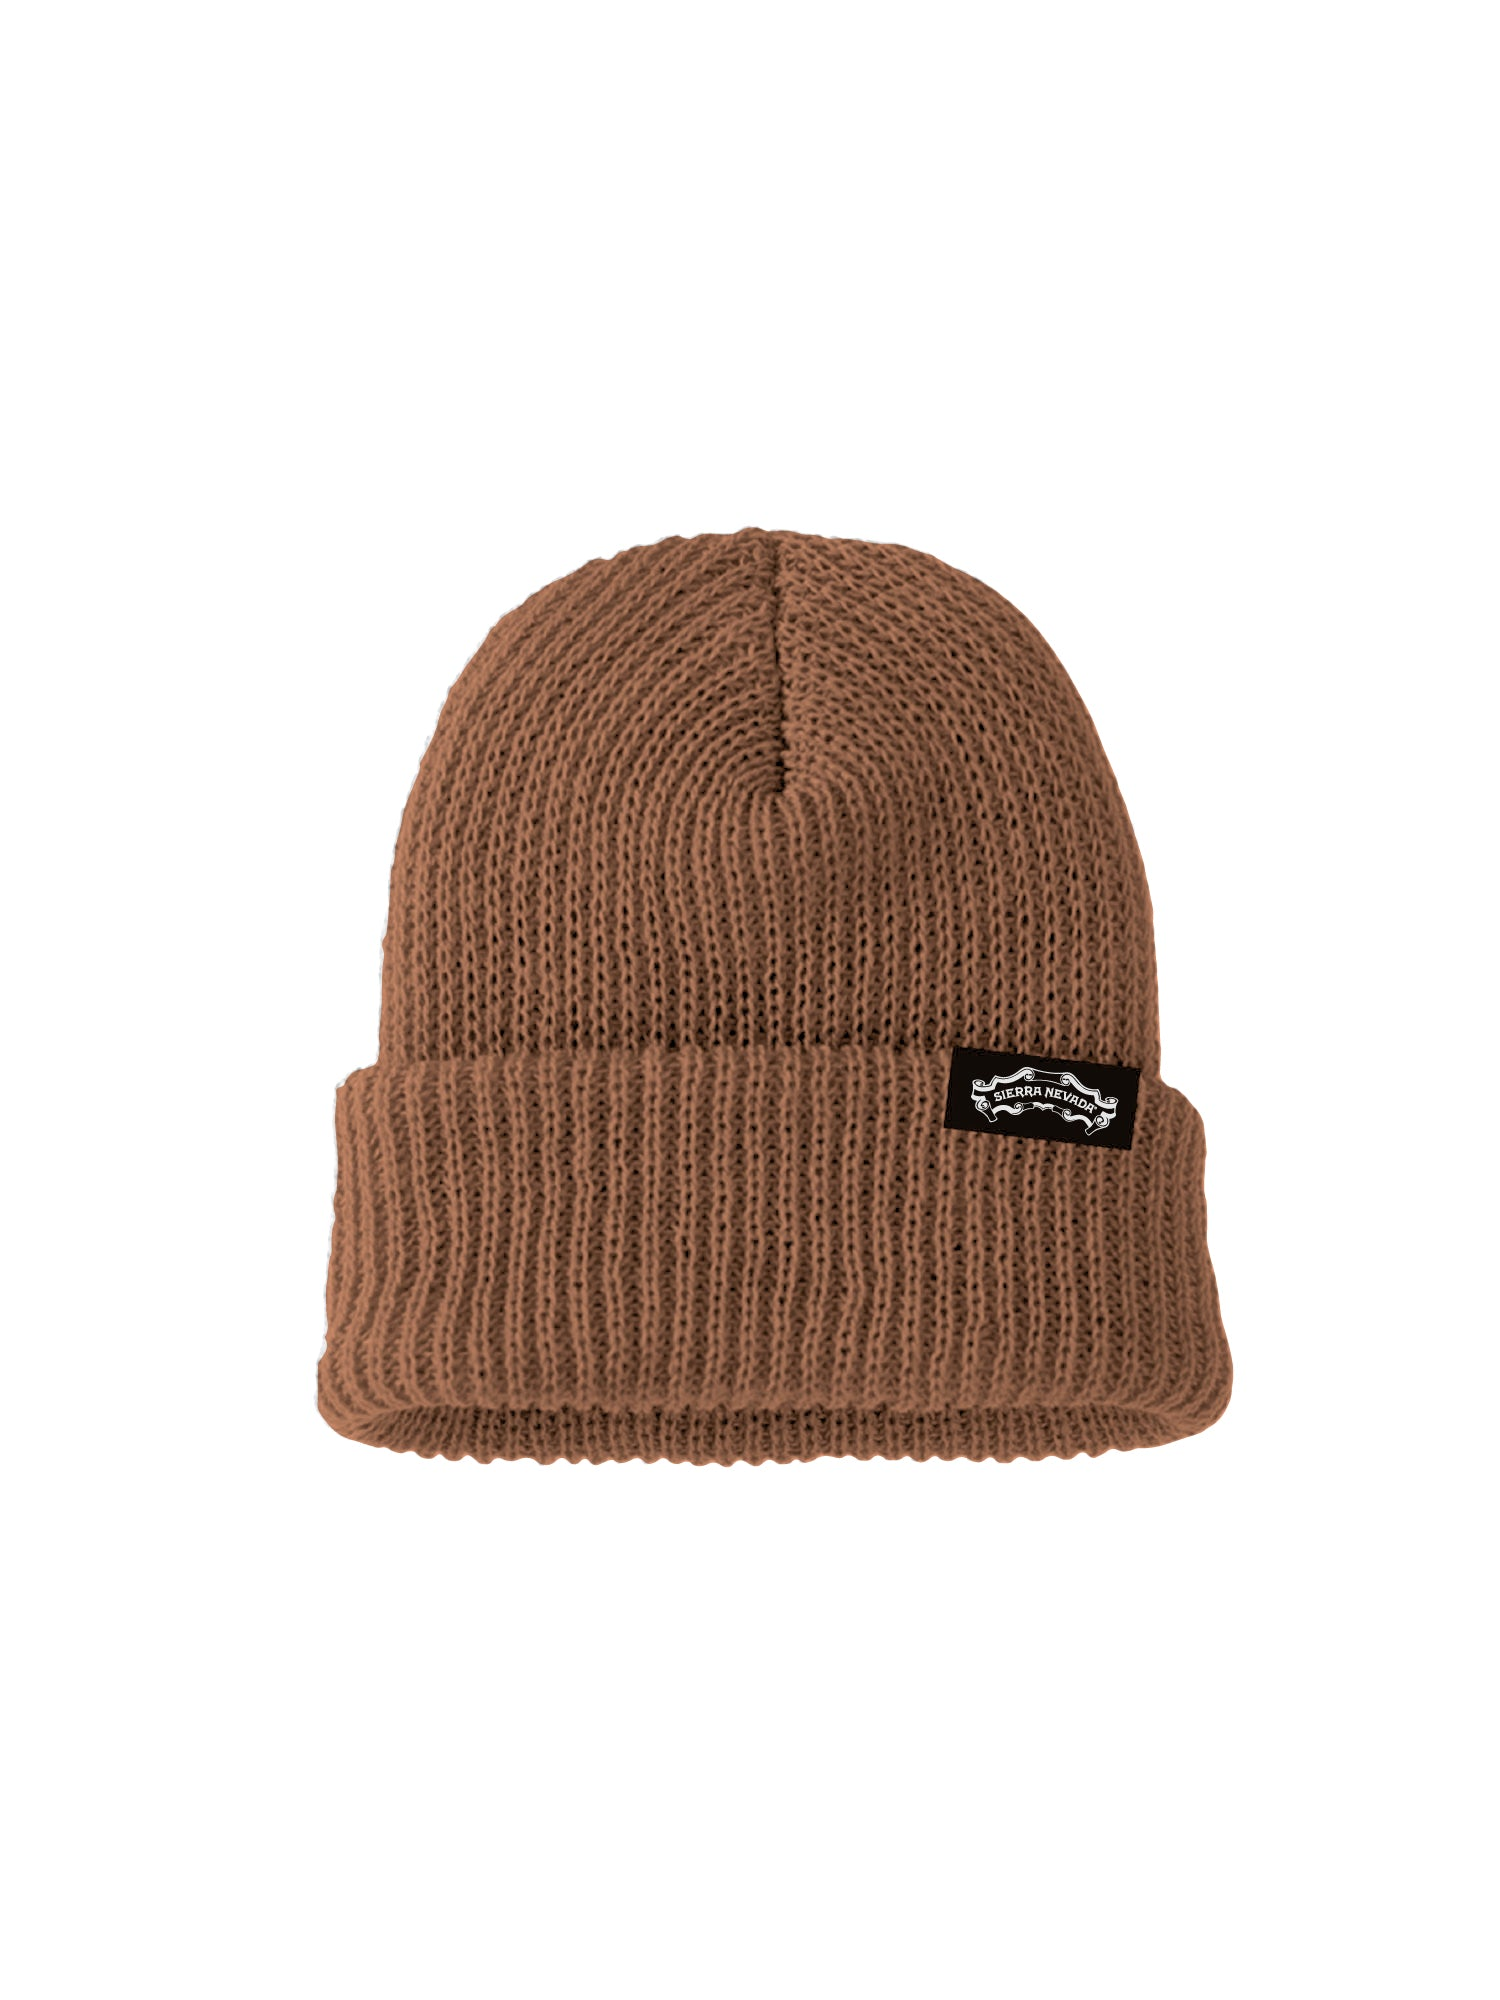 BEANIE- COPPER - Anderson Bros Design and Supply